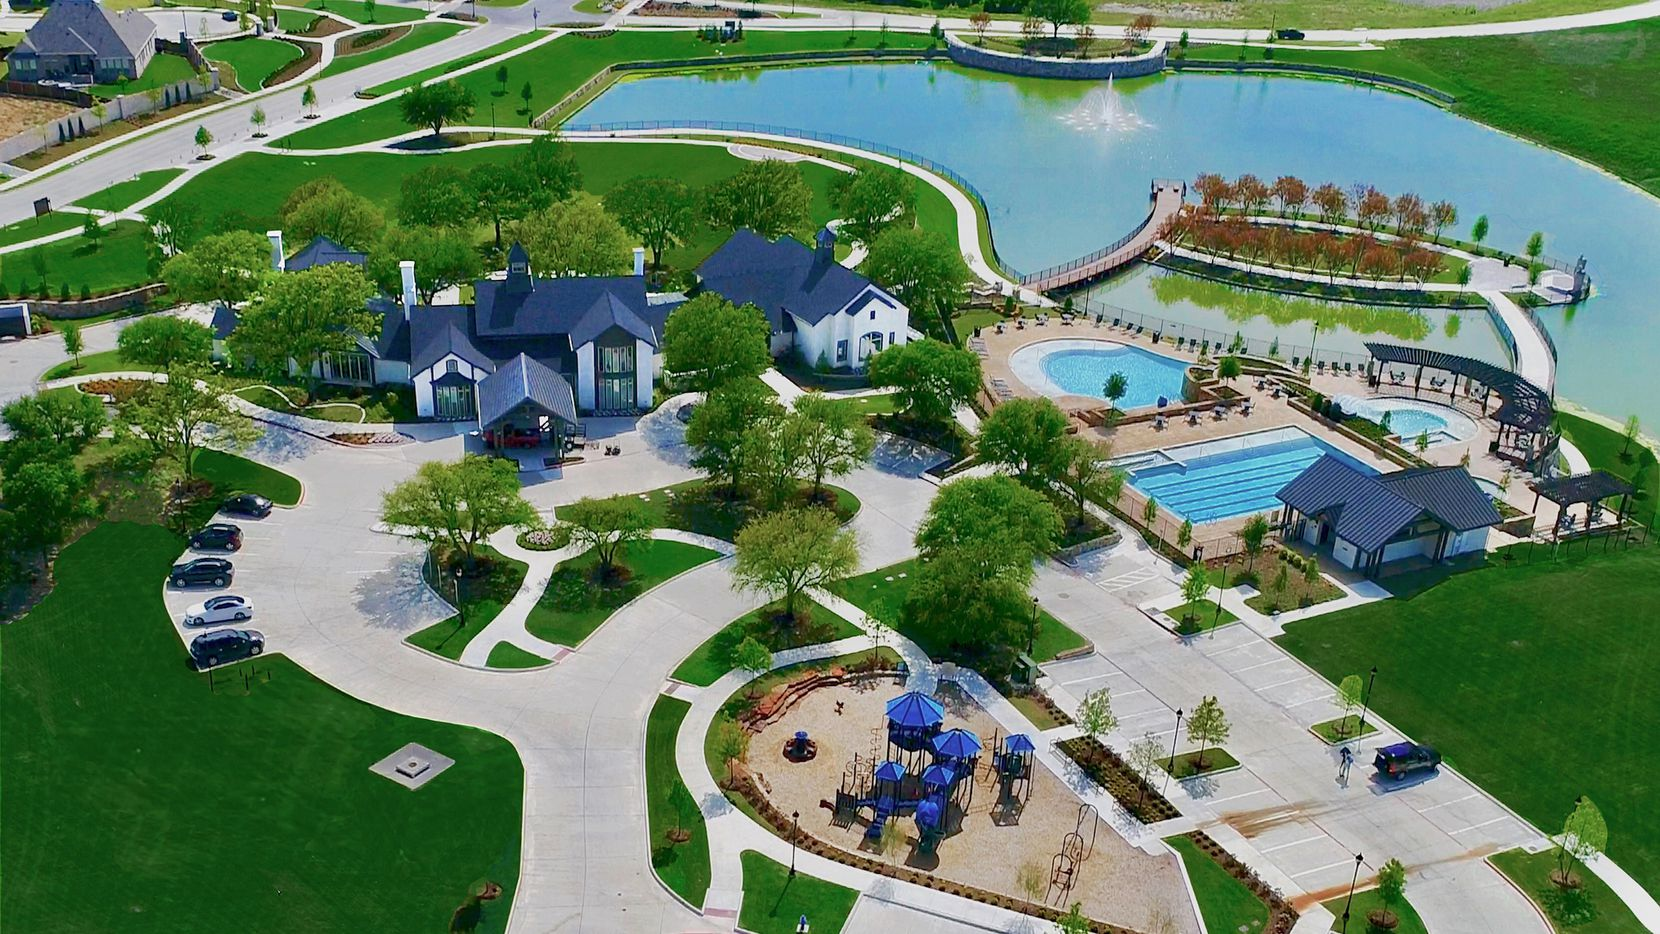 Mustang Lakes offers resort-style living with a large amenity center, pools, lakes, trails and a community lifestyle director.